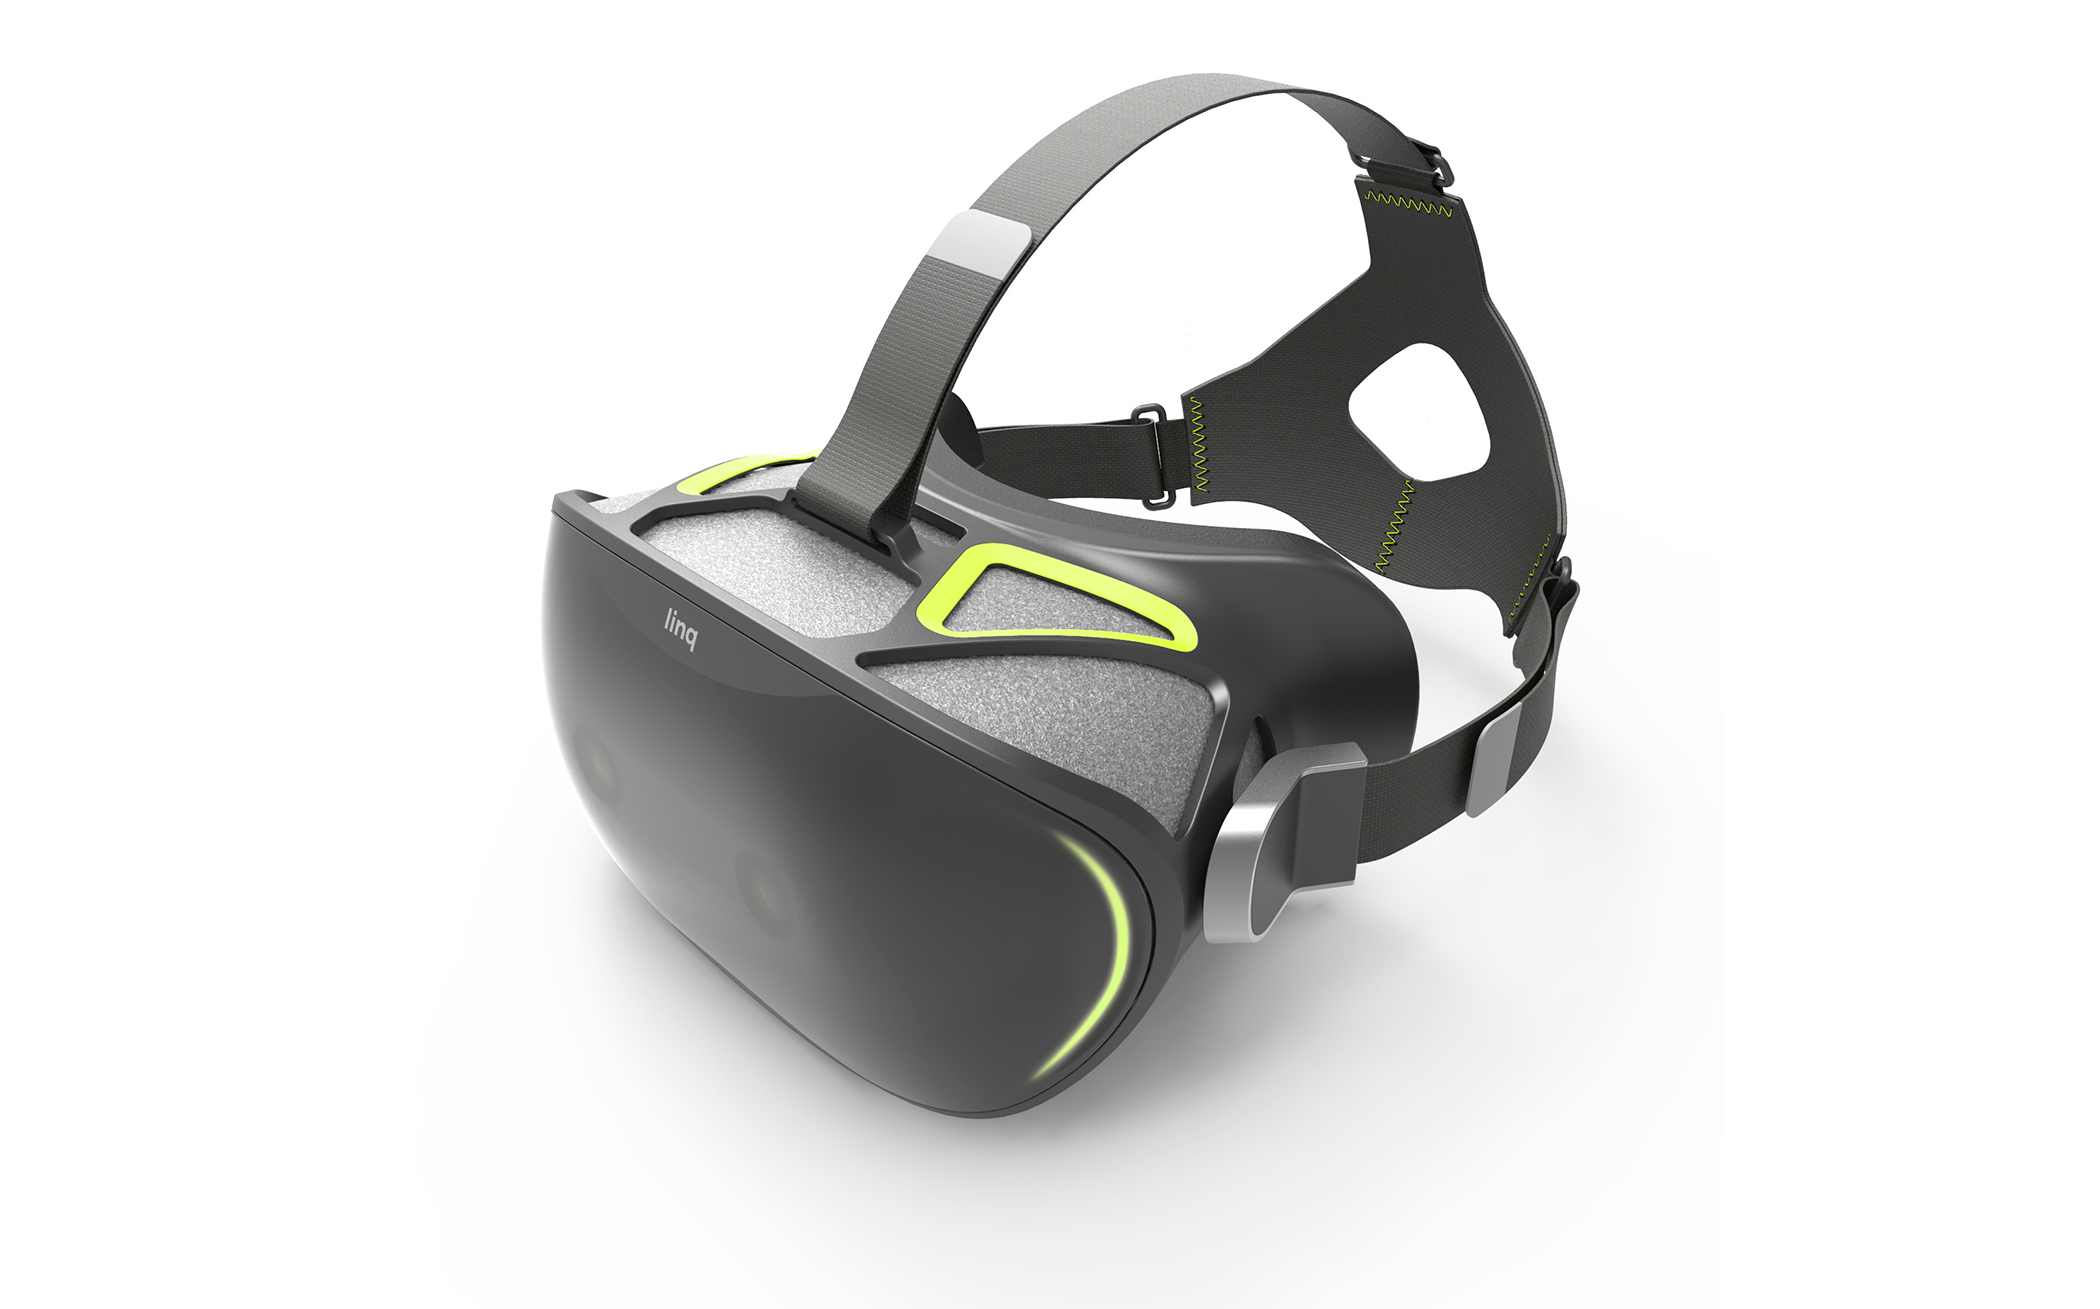 Linq mixed reality headset